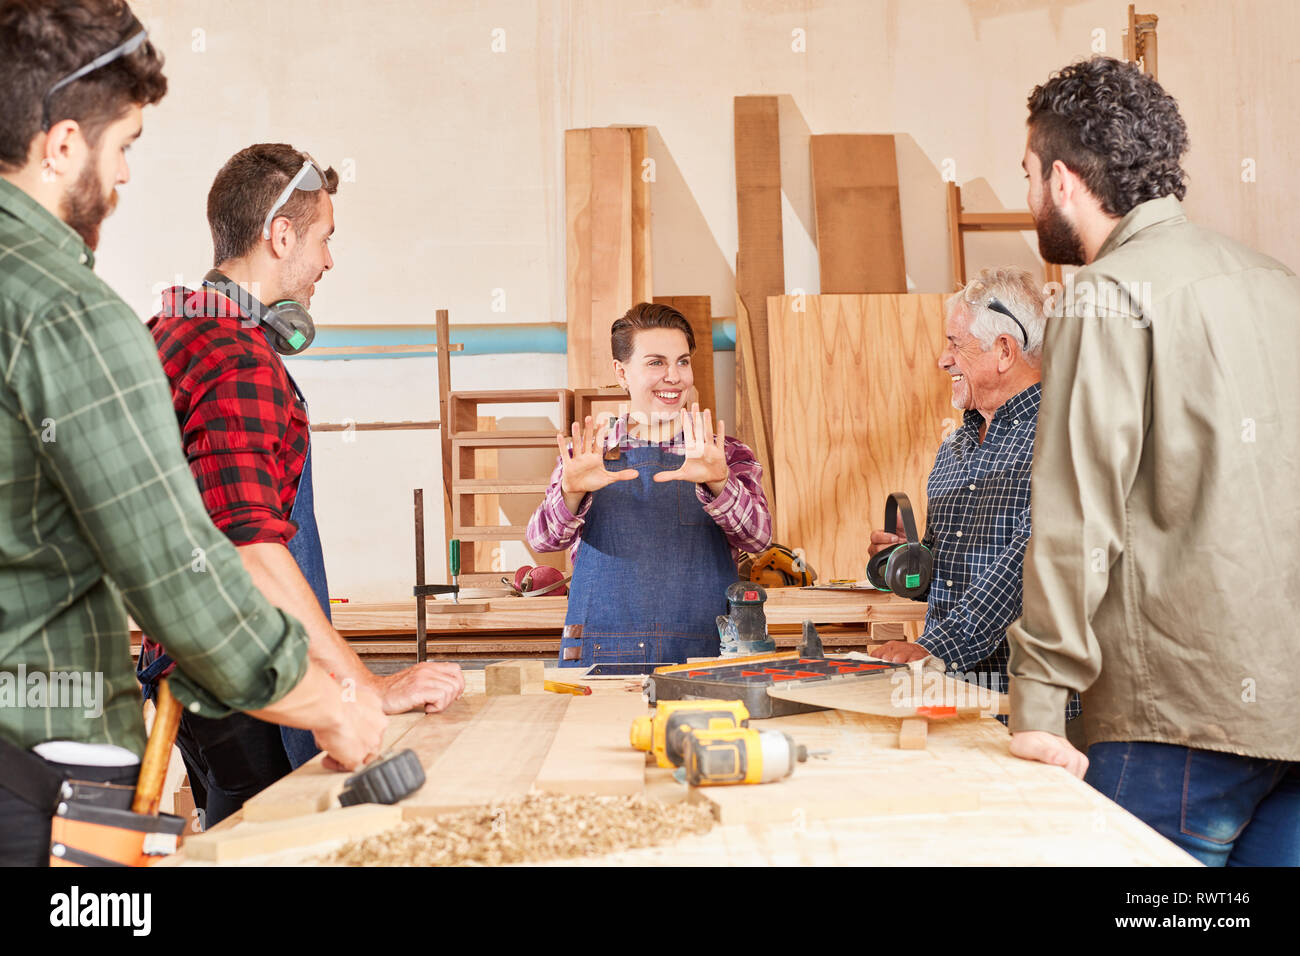 Artisan team and young apprentice woman in teaching together at the workbench - Stock Image